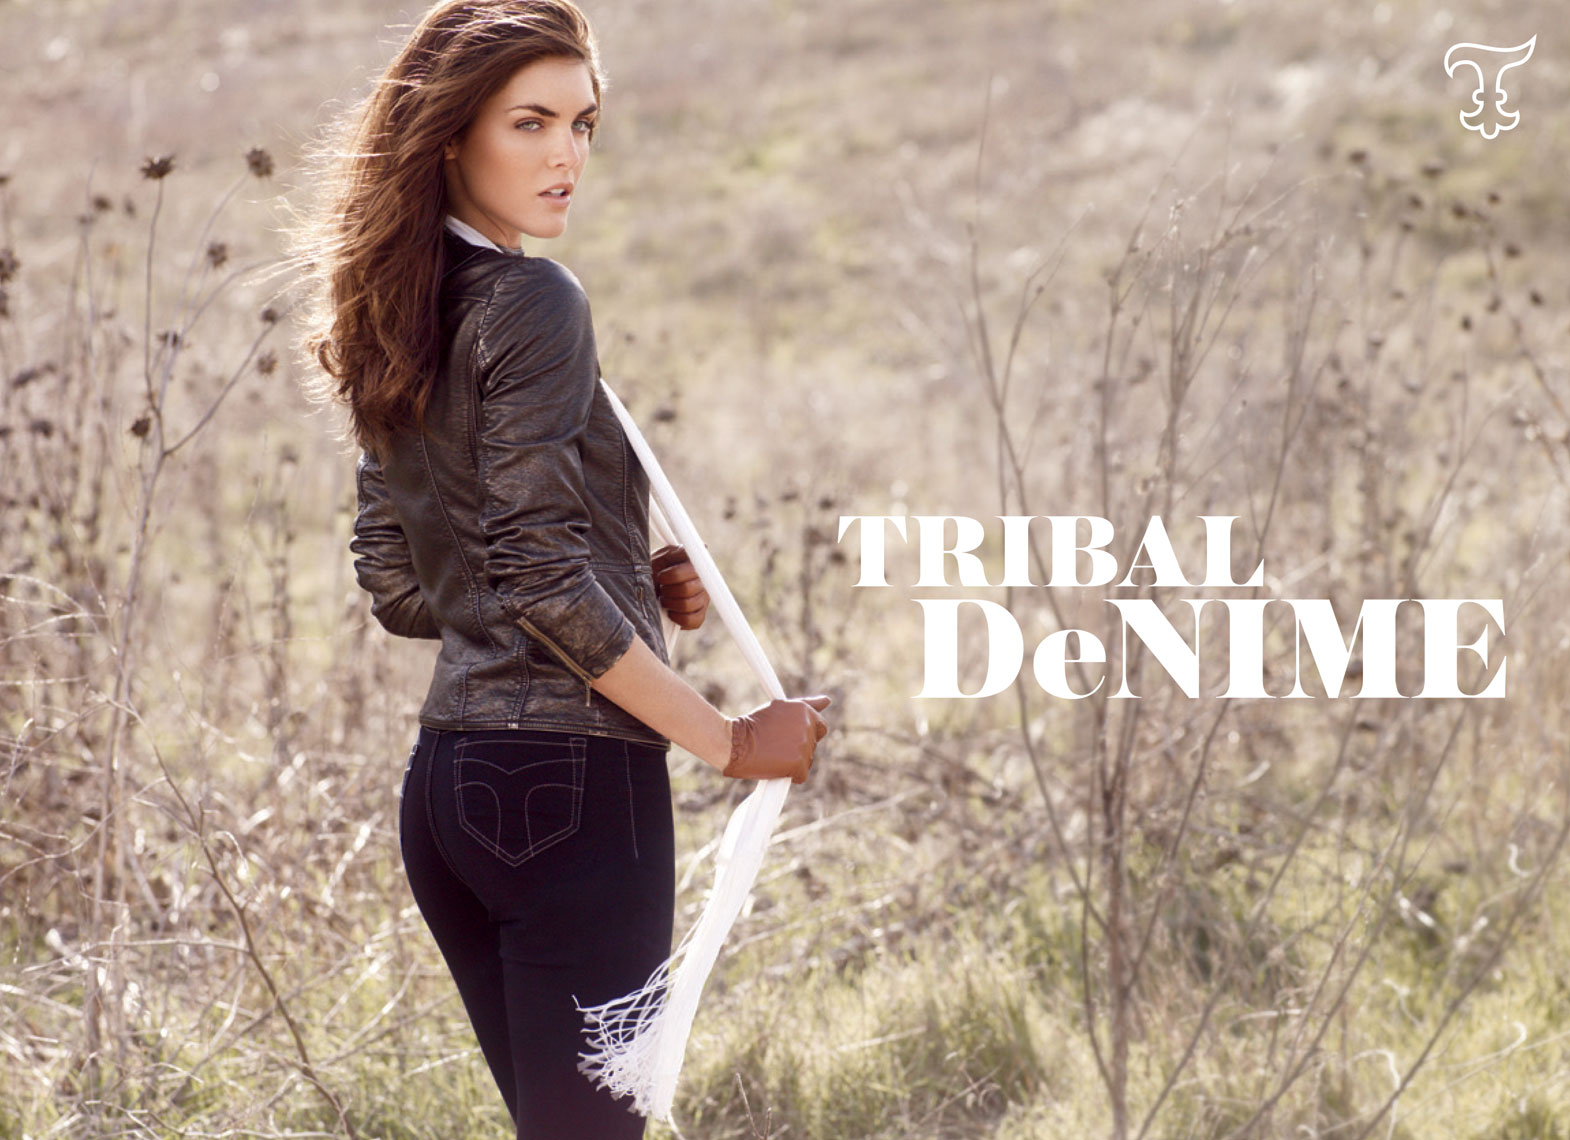 Tribal+Denime-11-images-6